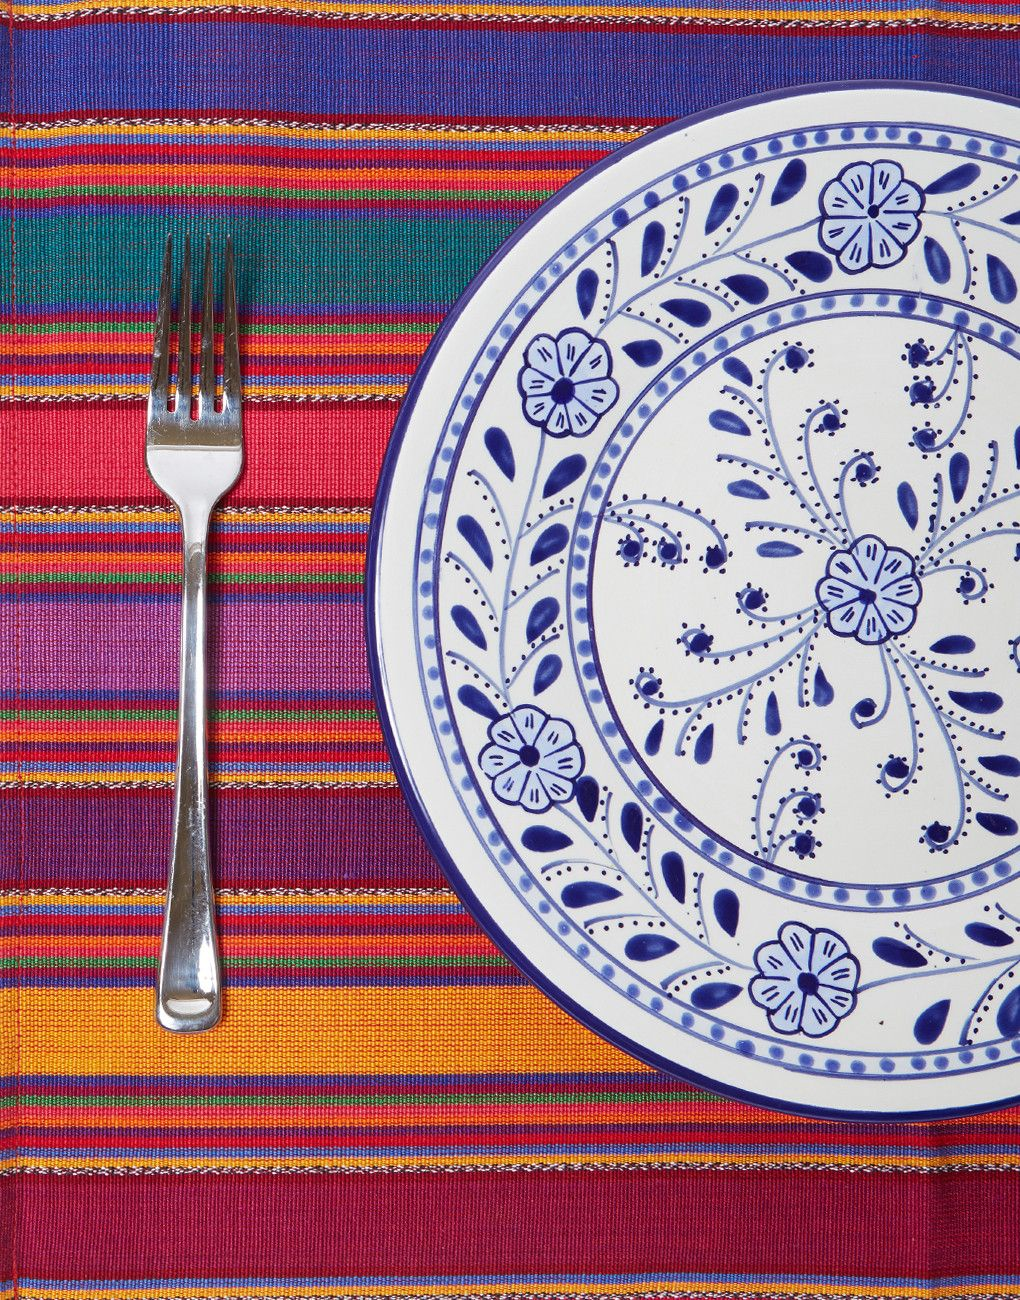 Fiesta Placemat Red Placemats Bright Table Hand Weaving